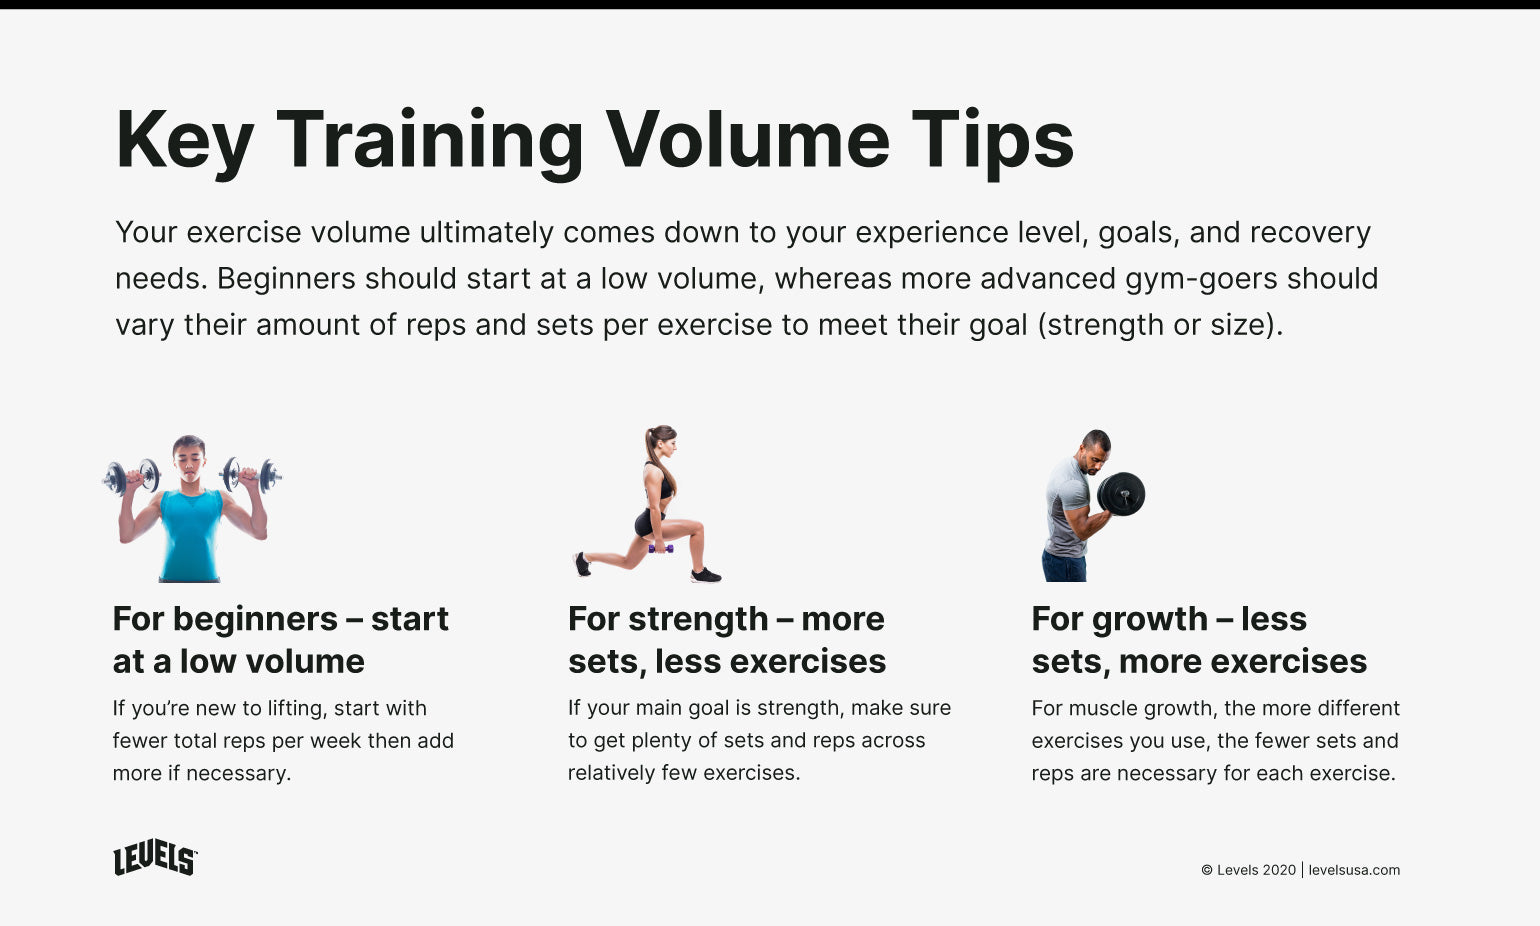 Tips for Exercise Volume - Infographic